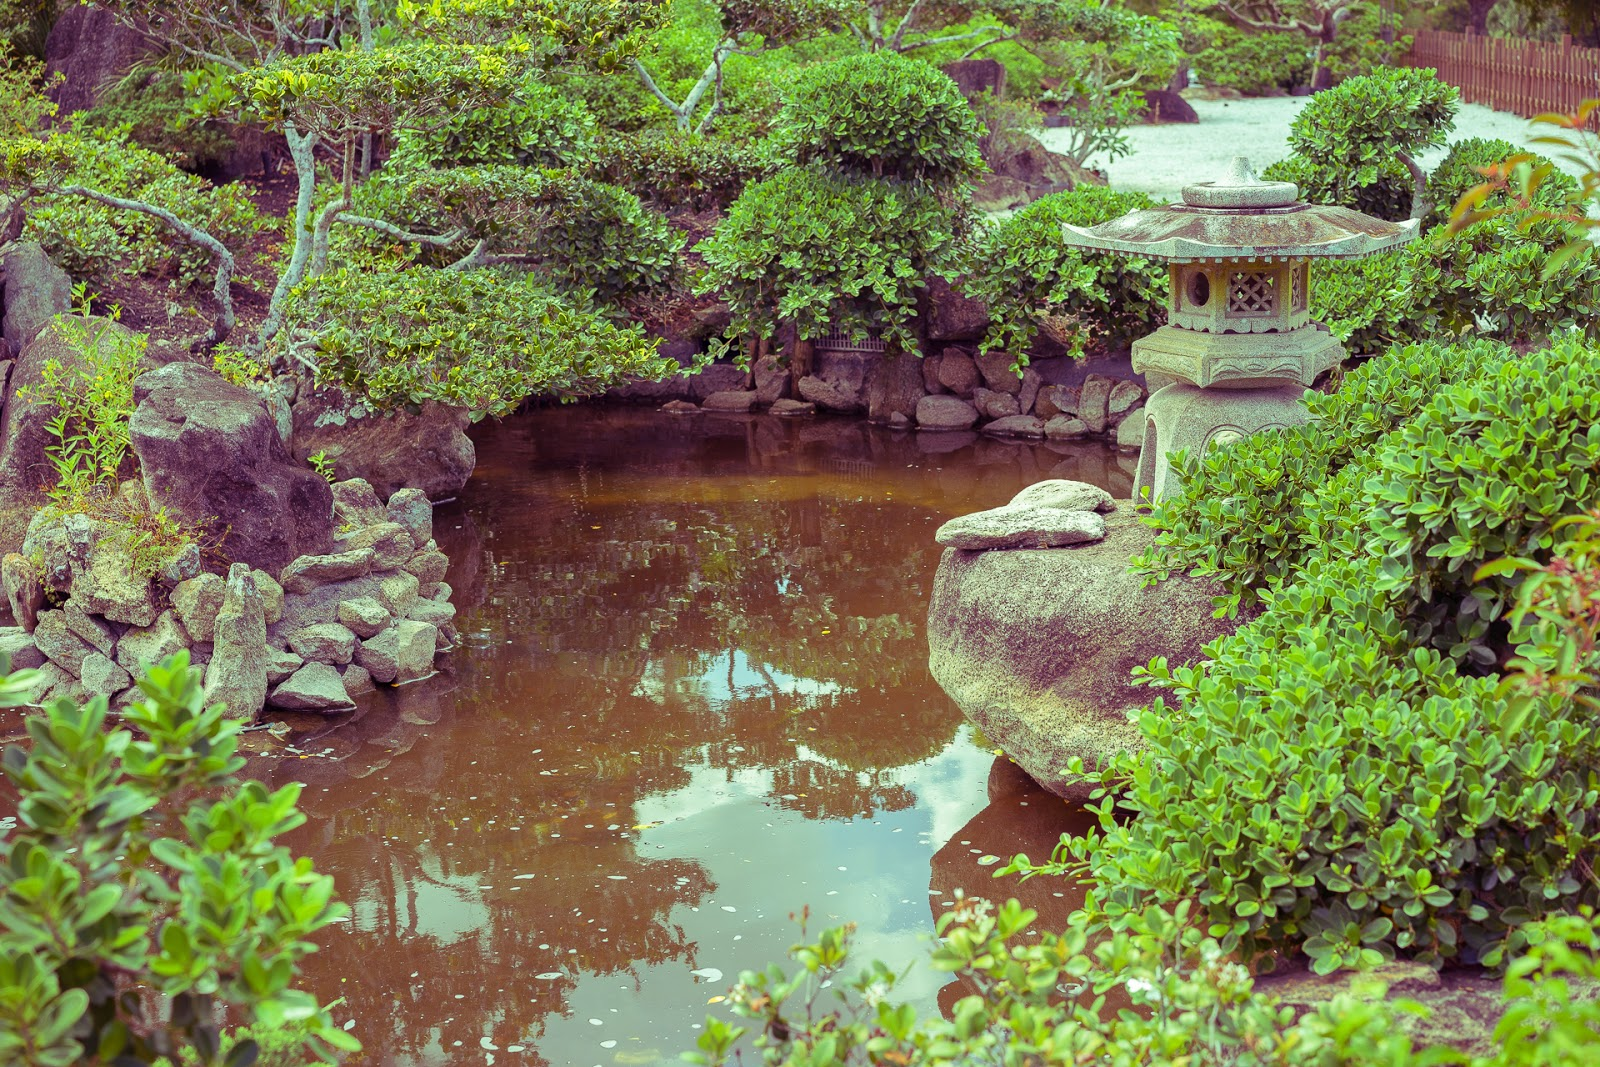 Hectoradventures Hatsume Festival Morikami Museum And Japanese Gardens 04 19 15